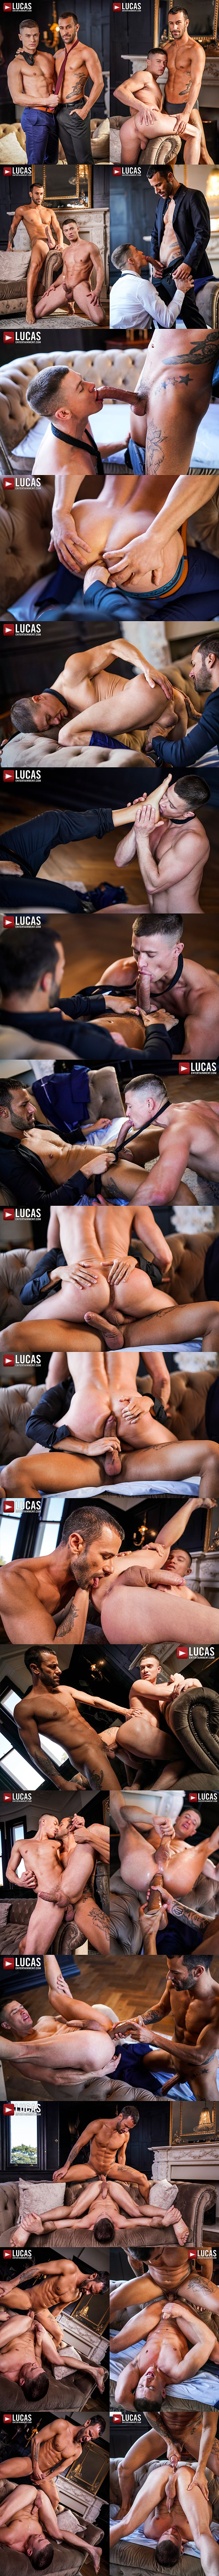 Handsome Spanish dude Gustavo Cruz barebacks jock bottom Ruslan Angelo before he fucks the cum out of Ruslan and breeds him in Gentlemen 30 Sweating Some Overtime at Lucasentertainment 01